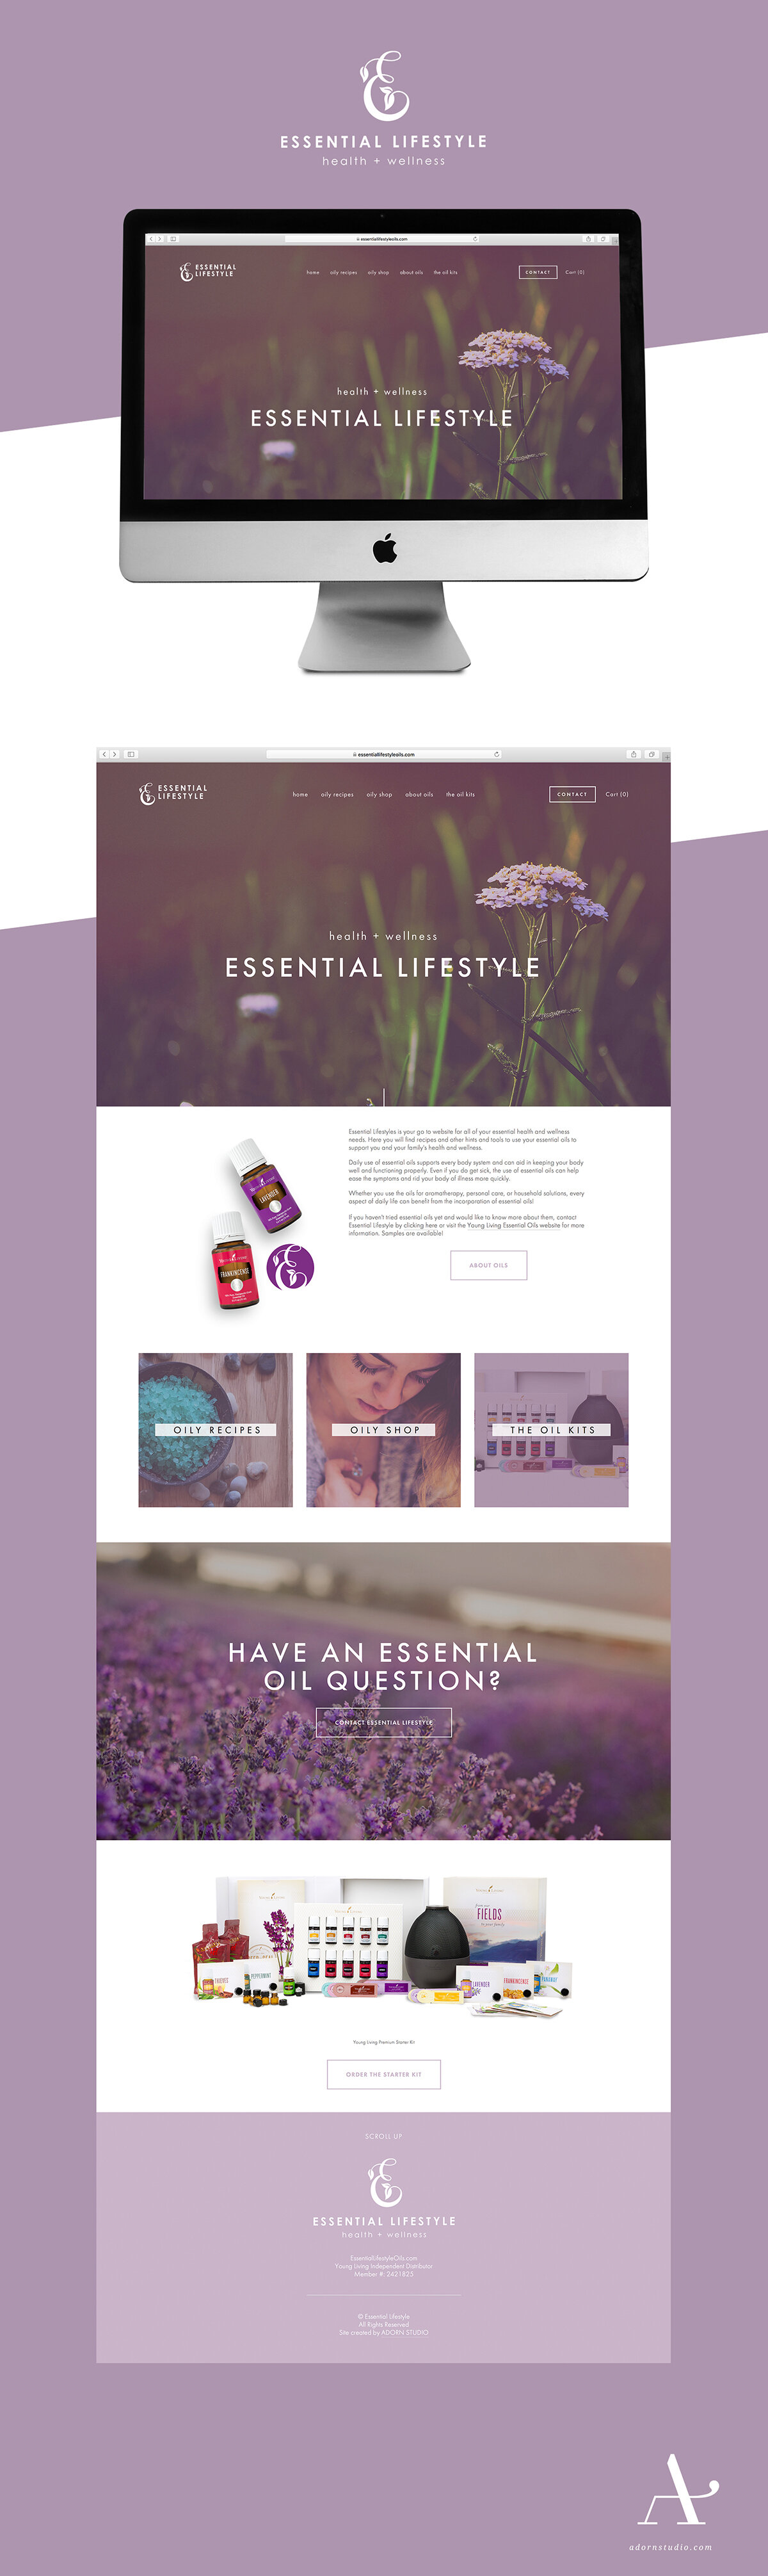 Adorn Studio | Responsive Web Design | Essential Lifestyle | Young Living Essential Oils